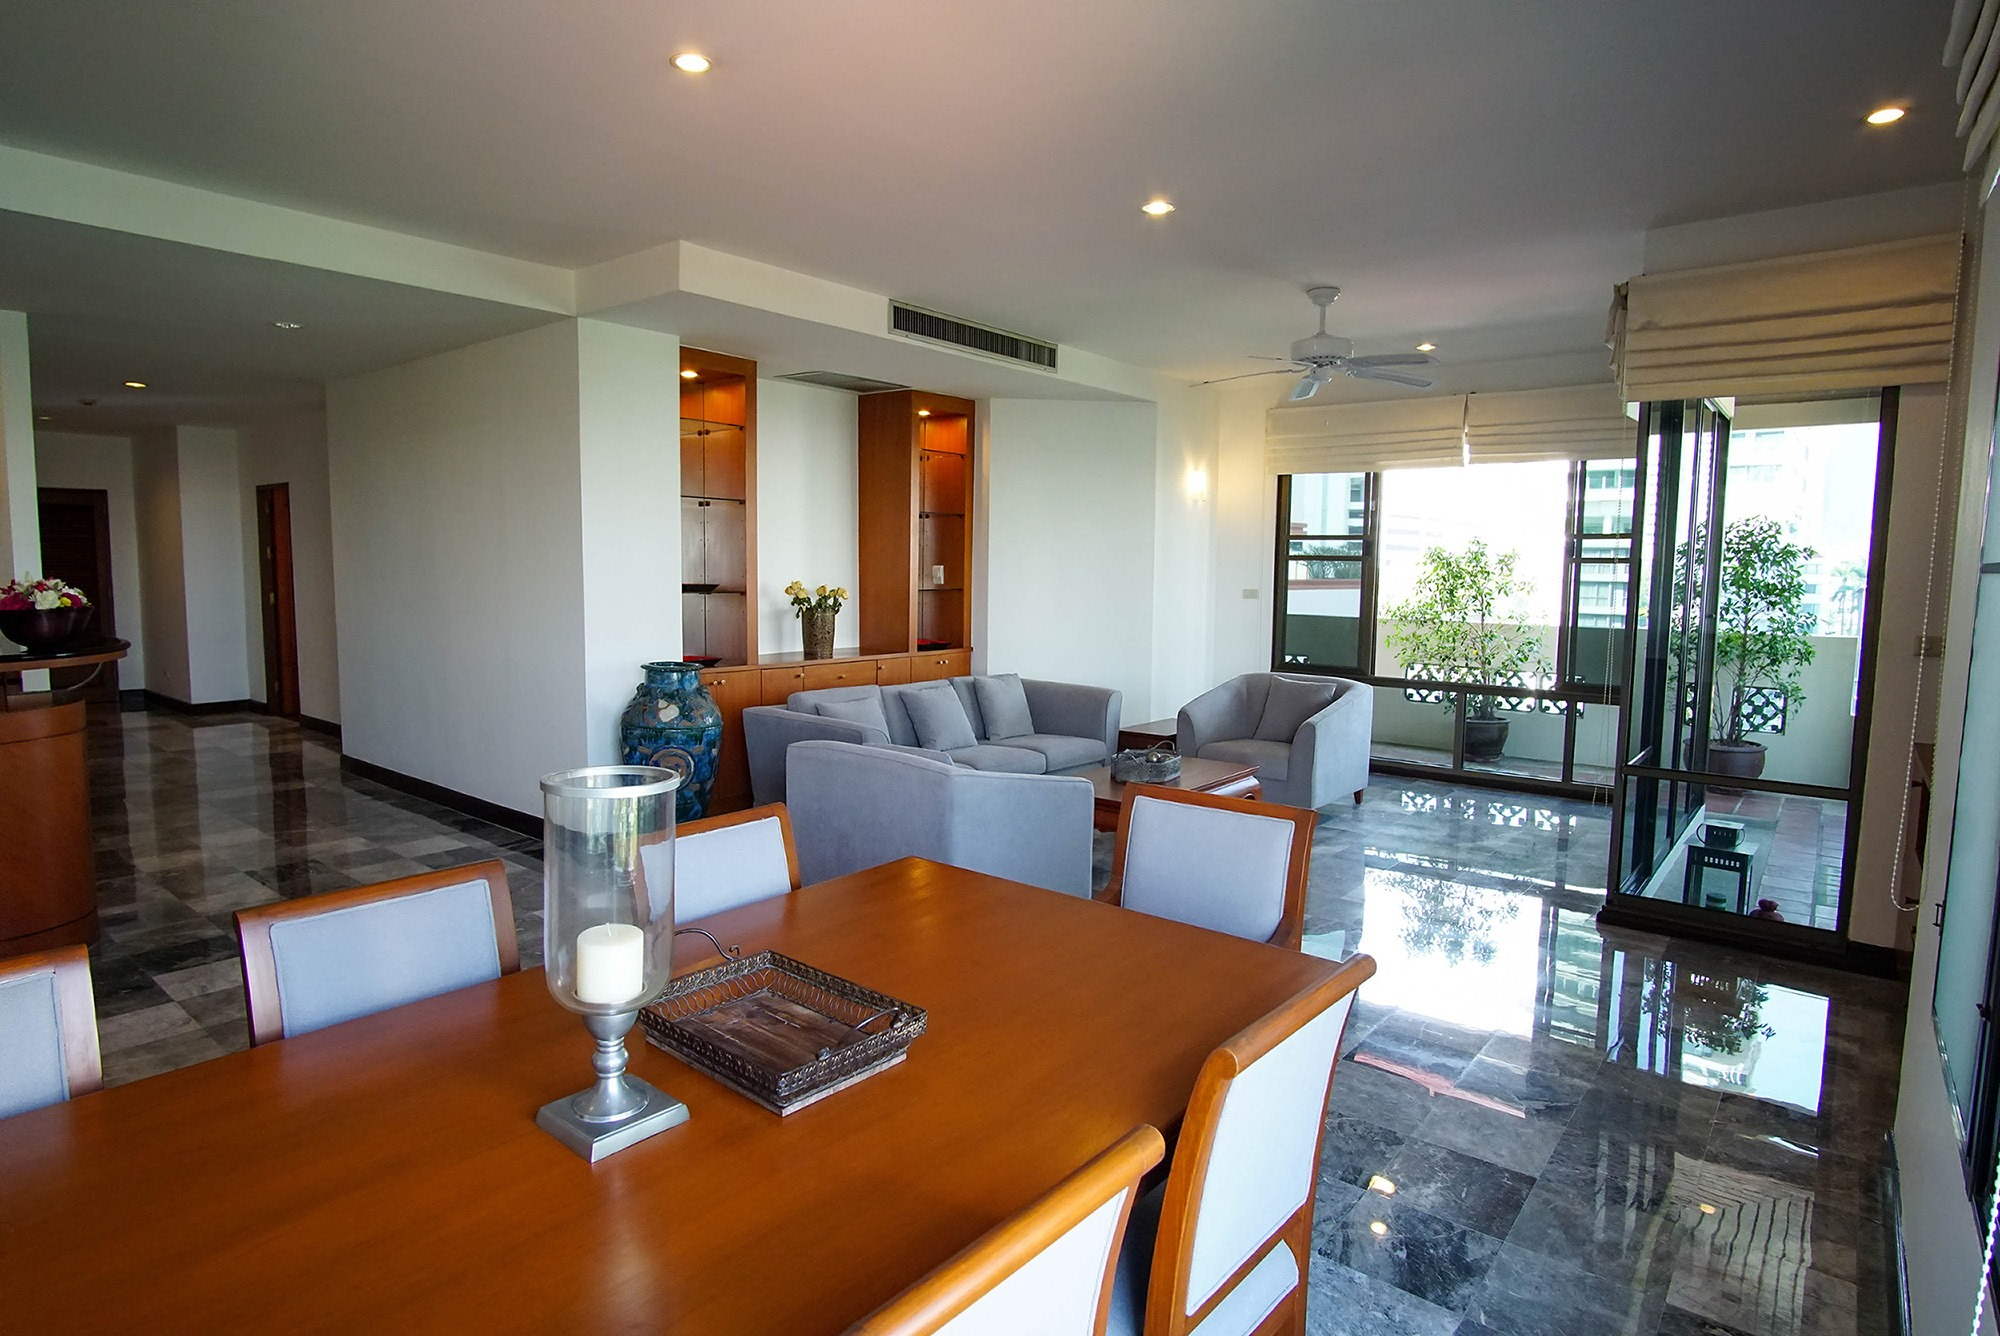 Apartment in Phrompong